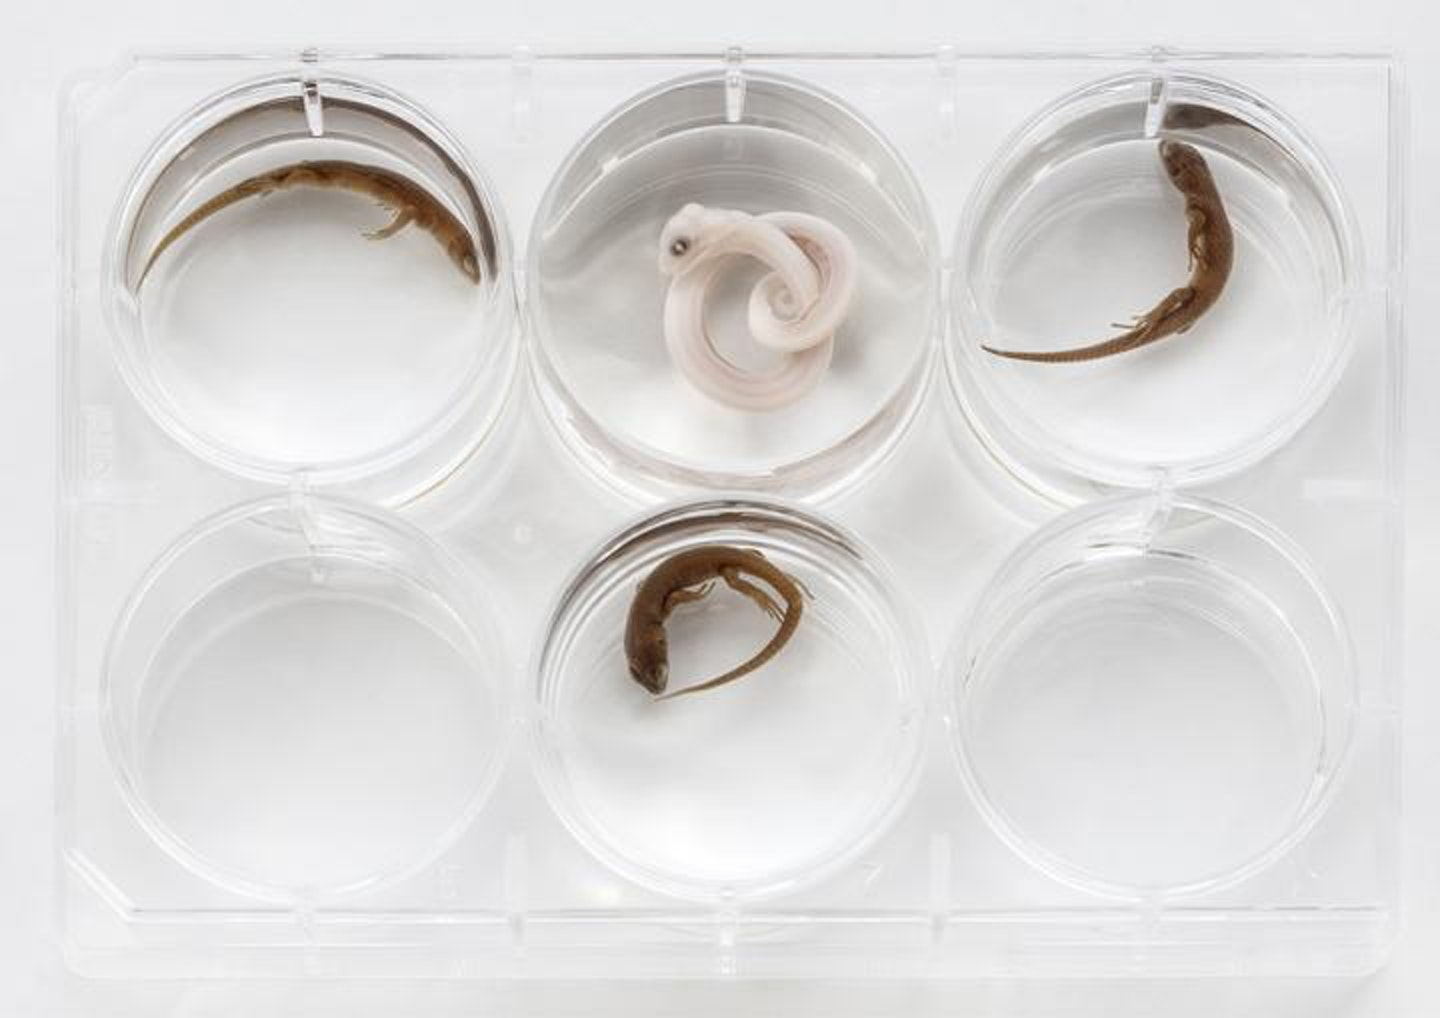 Snake Skulls Clarify How History's Creepiest Animals Lost Their Legs